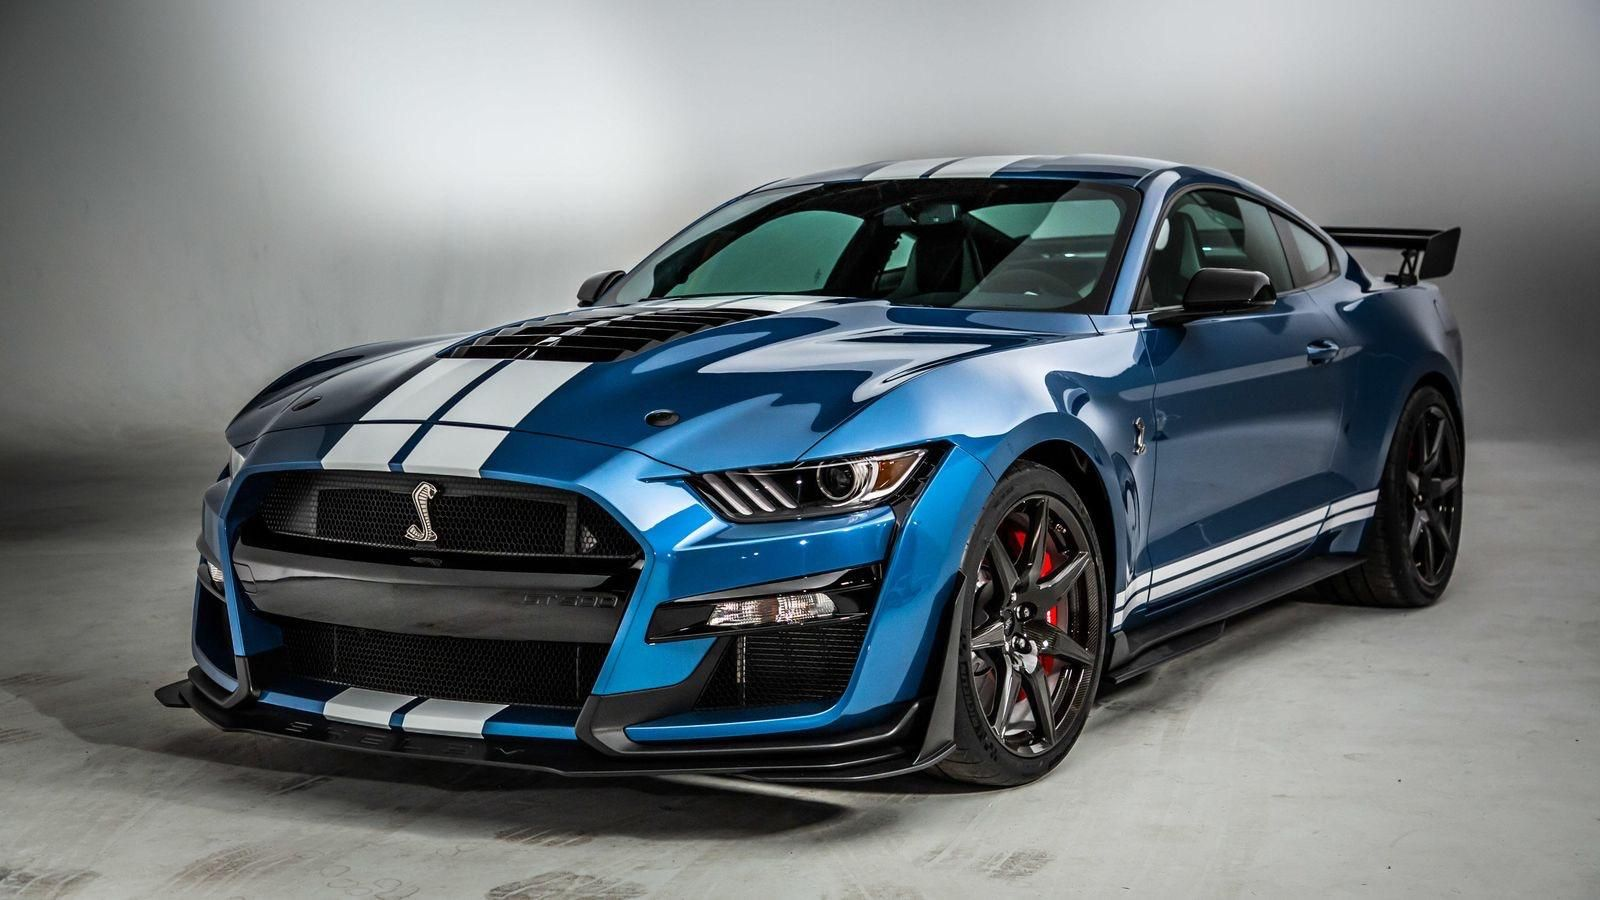 2020 Shelby GT500 Ford mustang gt500, Ford mustang